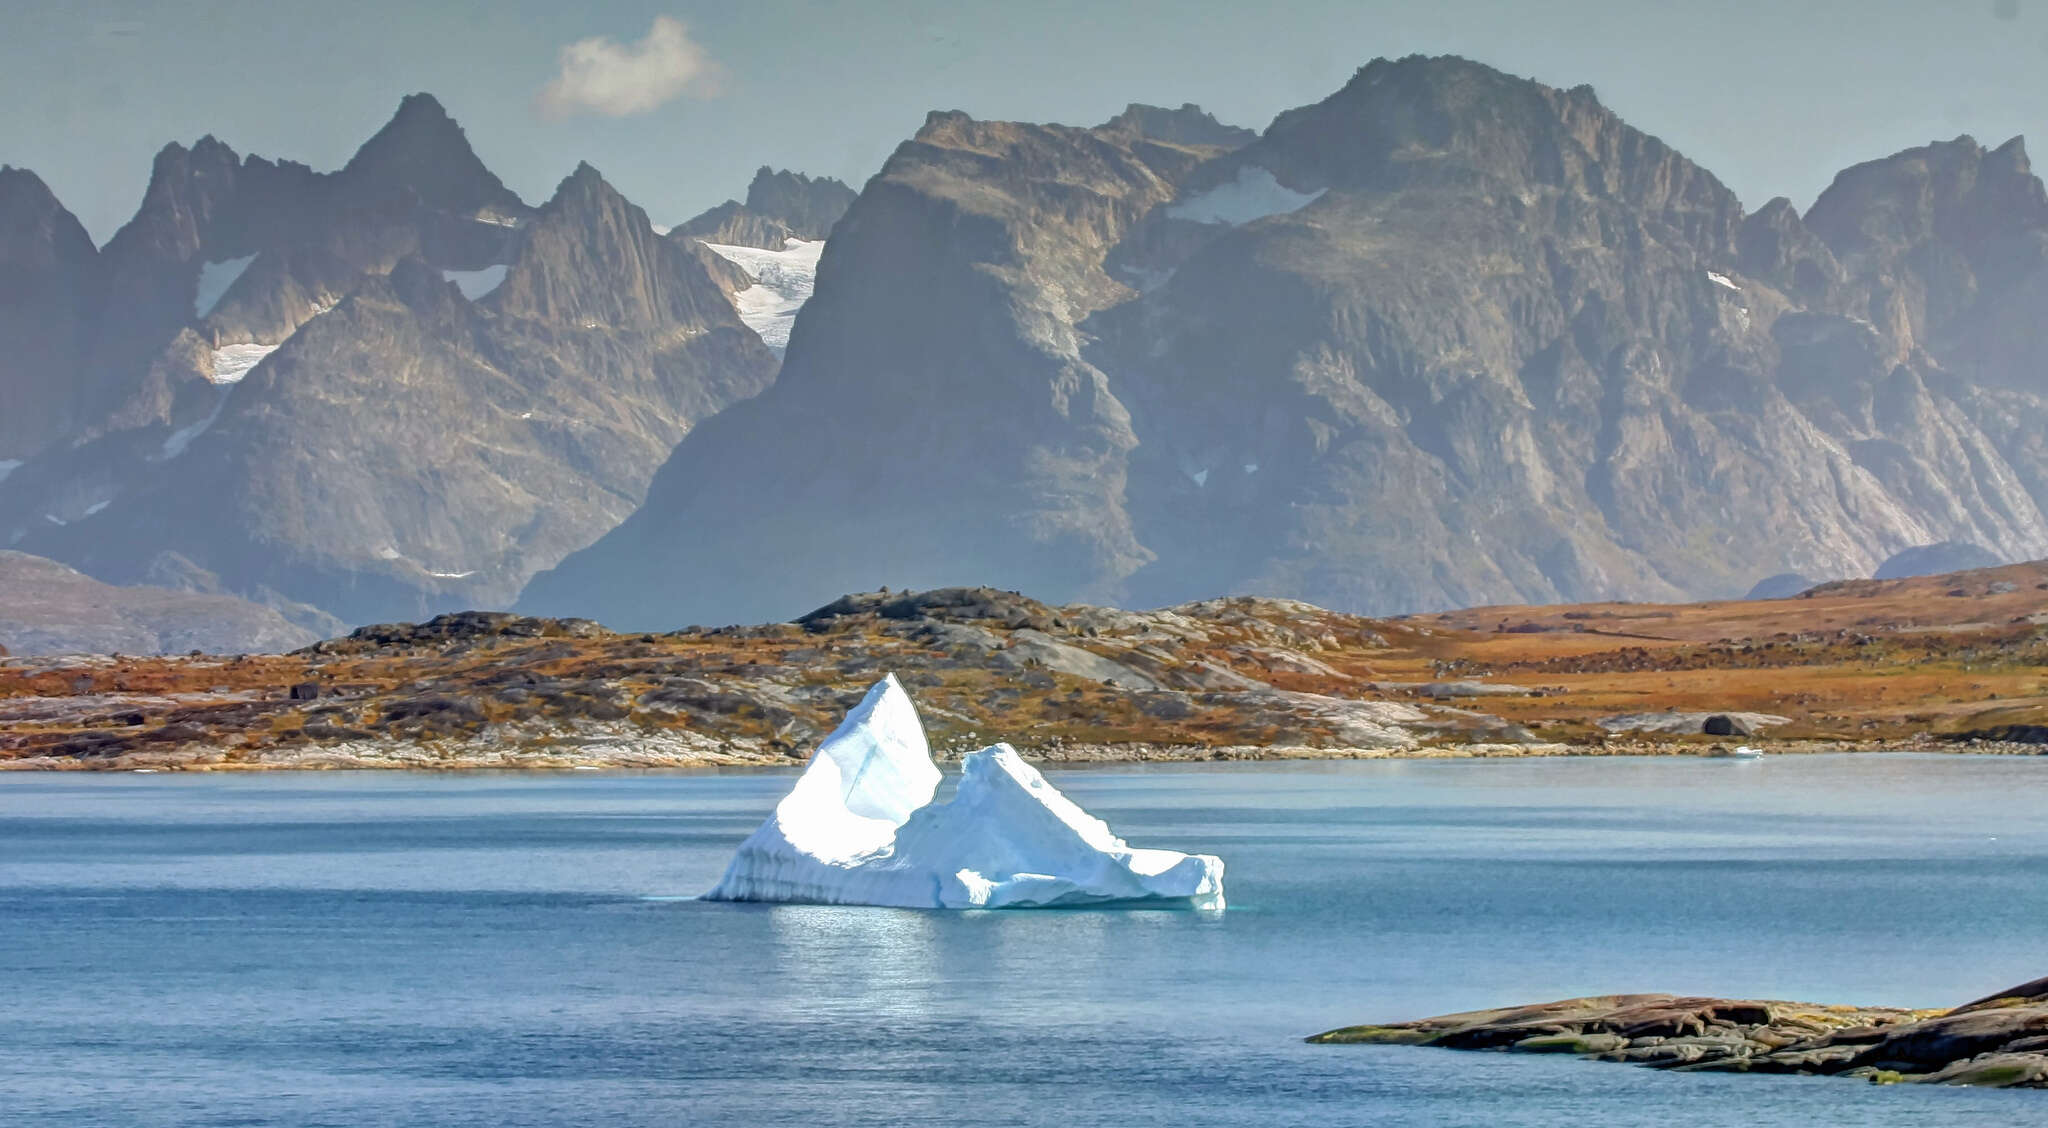 The Northwest Passage: From Greenland to the Bering Sea